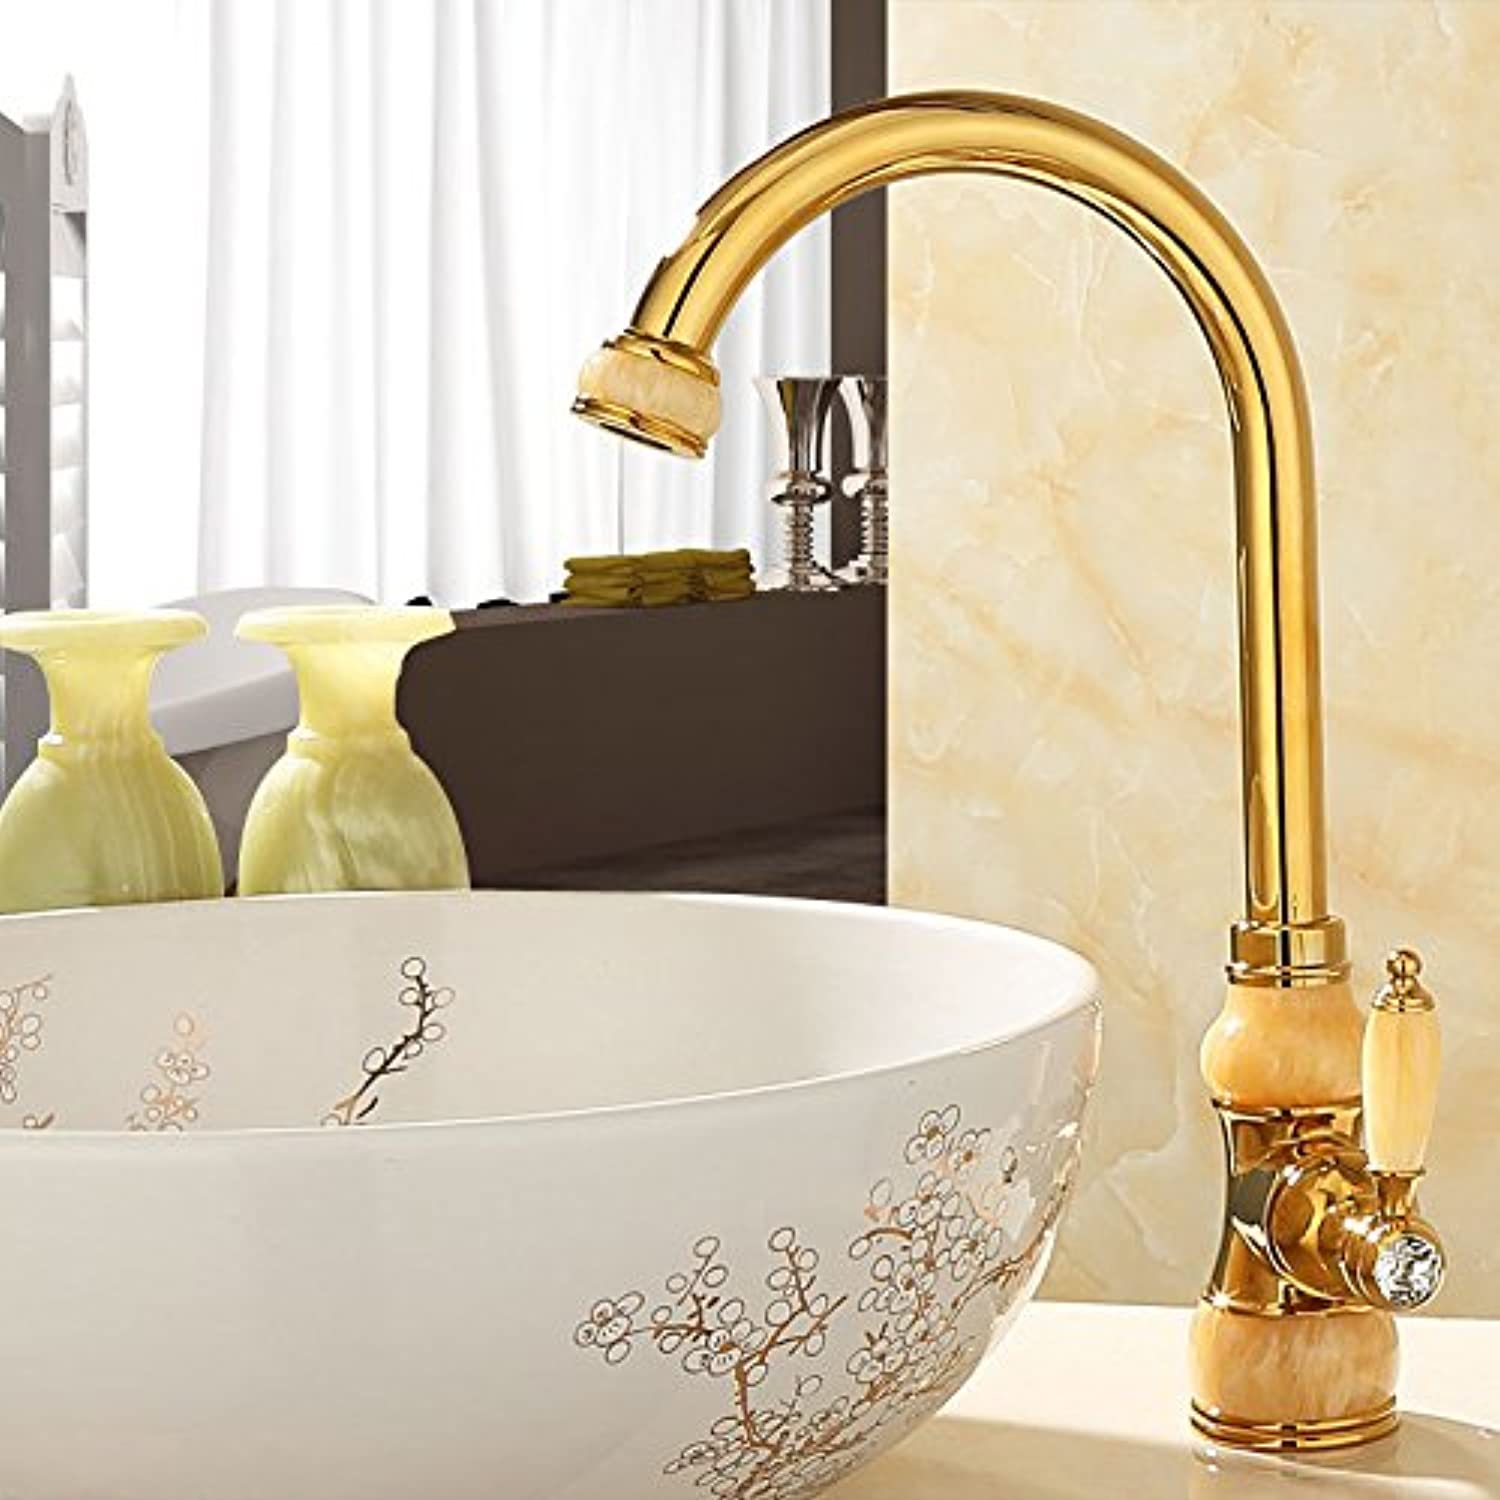 Hlluya Professional Sink Mixer Tap Kitchen Faucet Natural jade full copper surface basin of cold water faucet kitchen sink to redate the gold antique fittings,